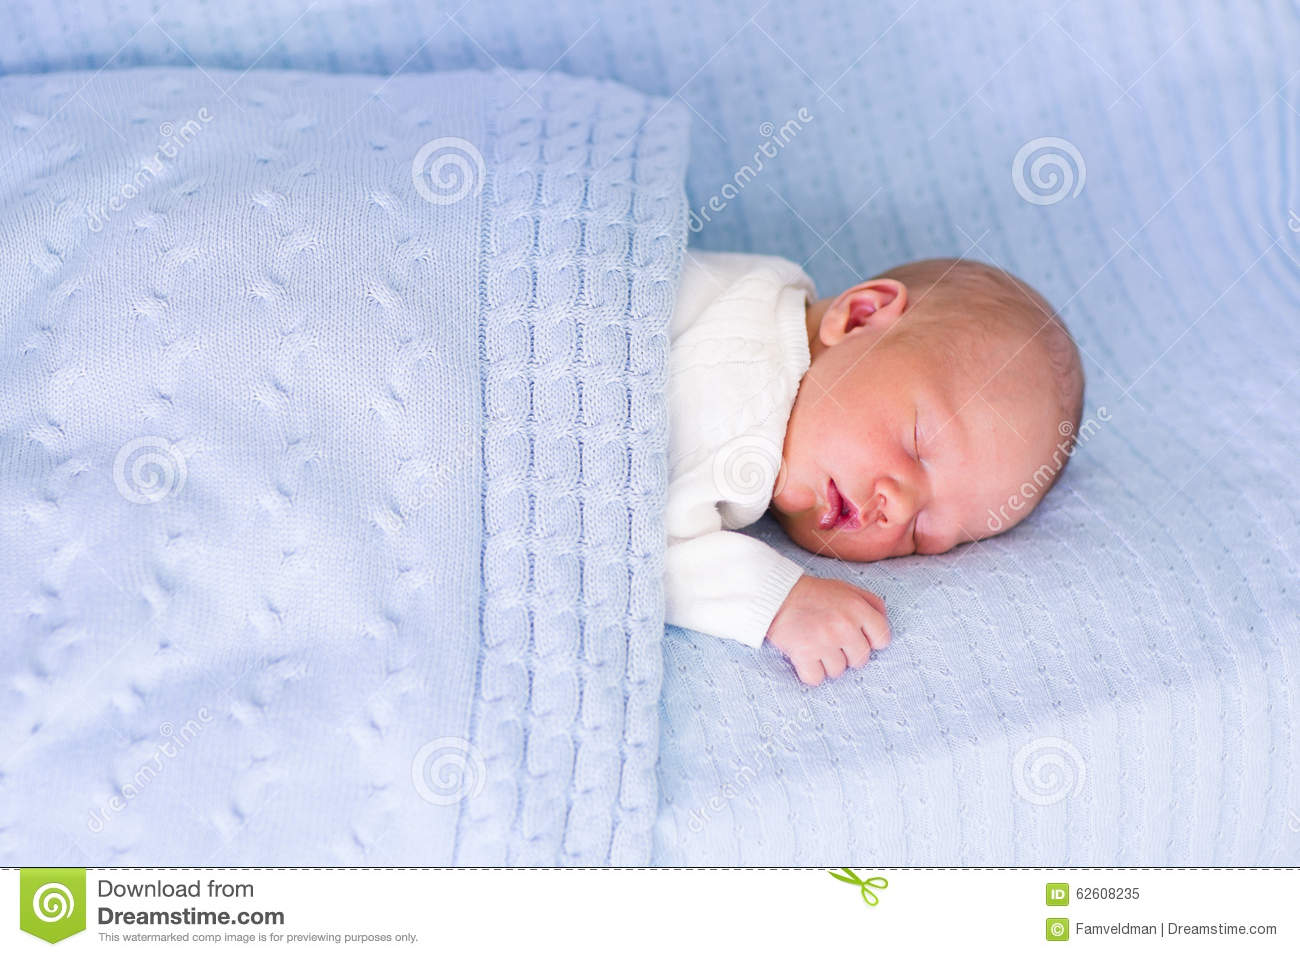 10077767a6e7 Newborn Baby Boy On A Blue Blanket Stock Image - Image of blue ...